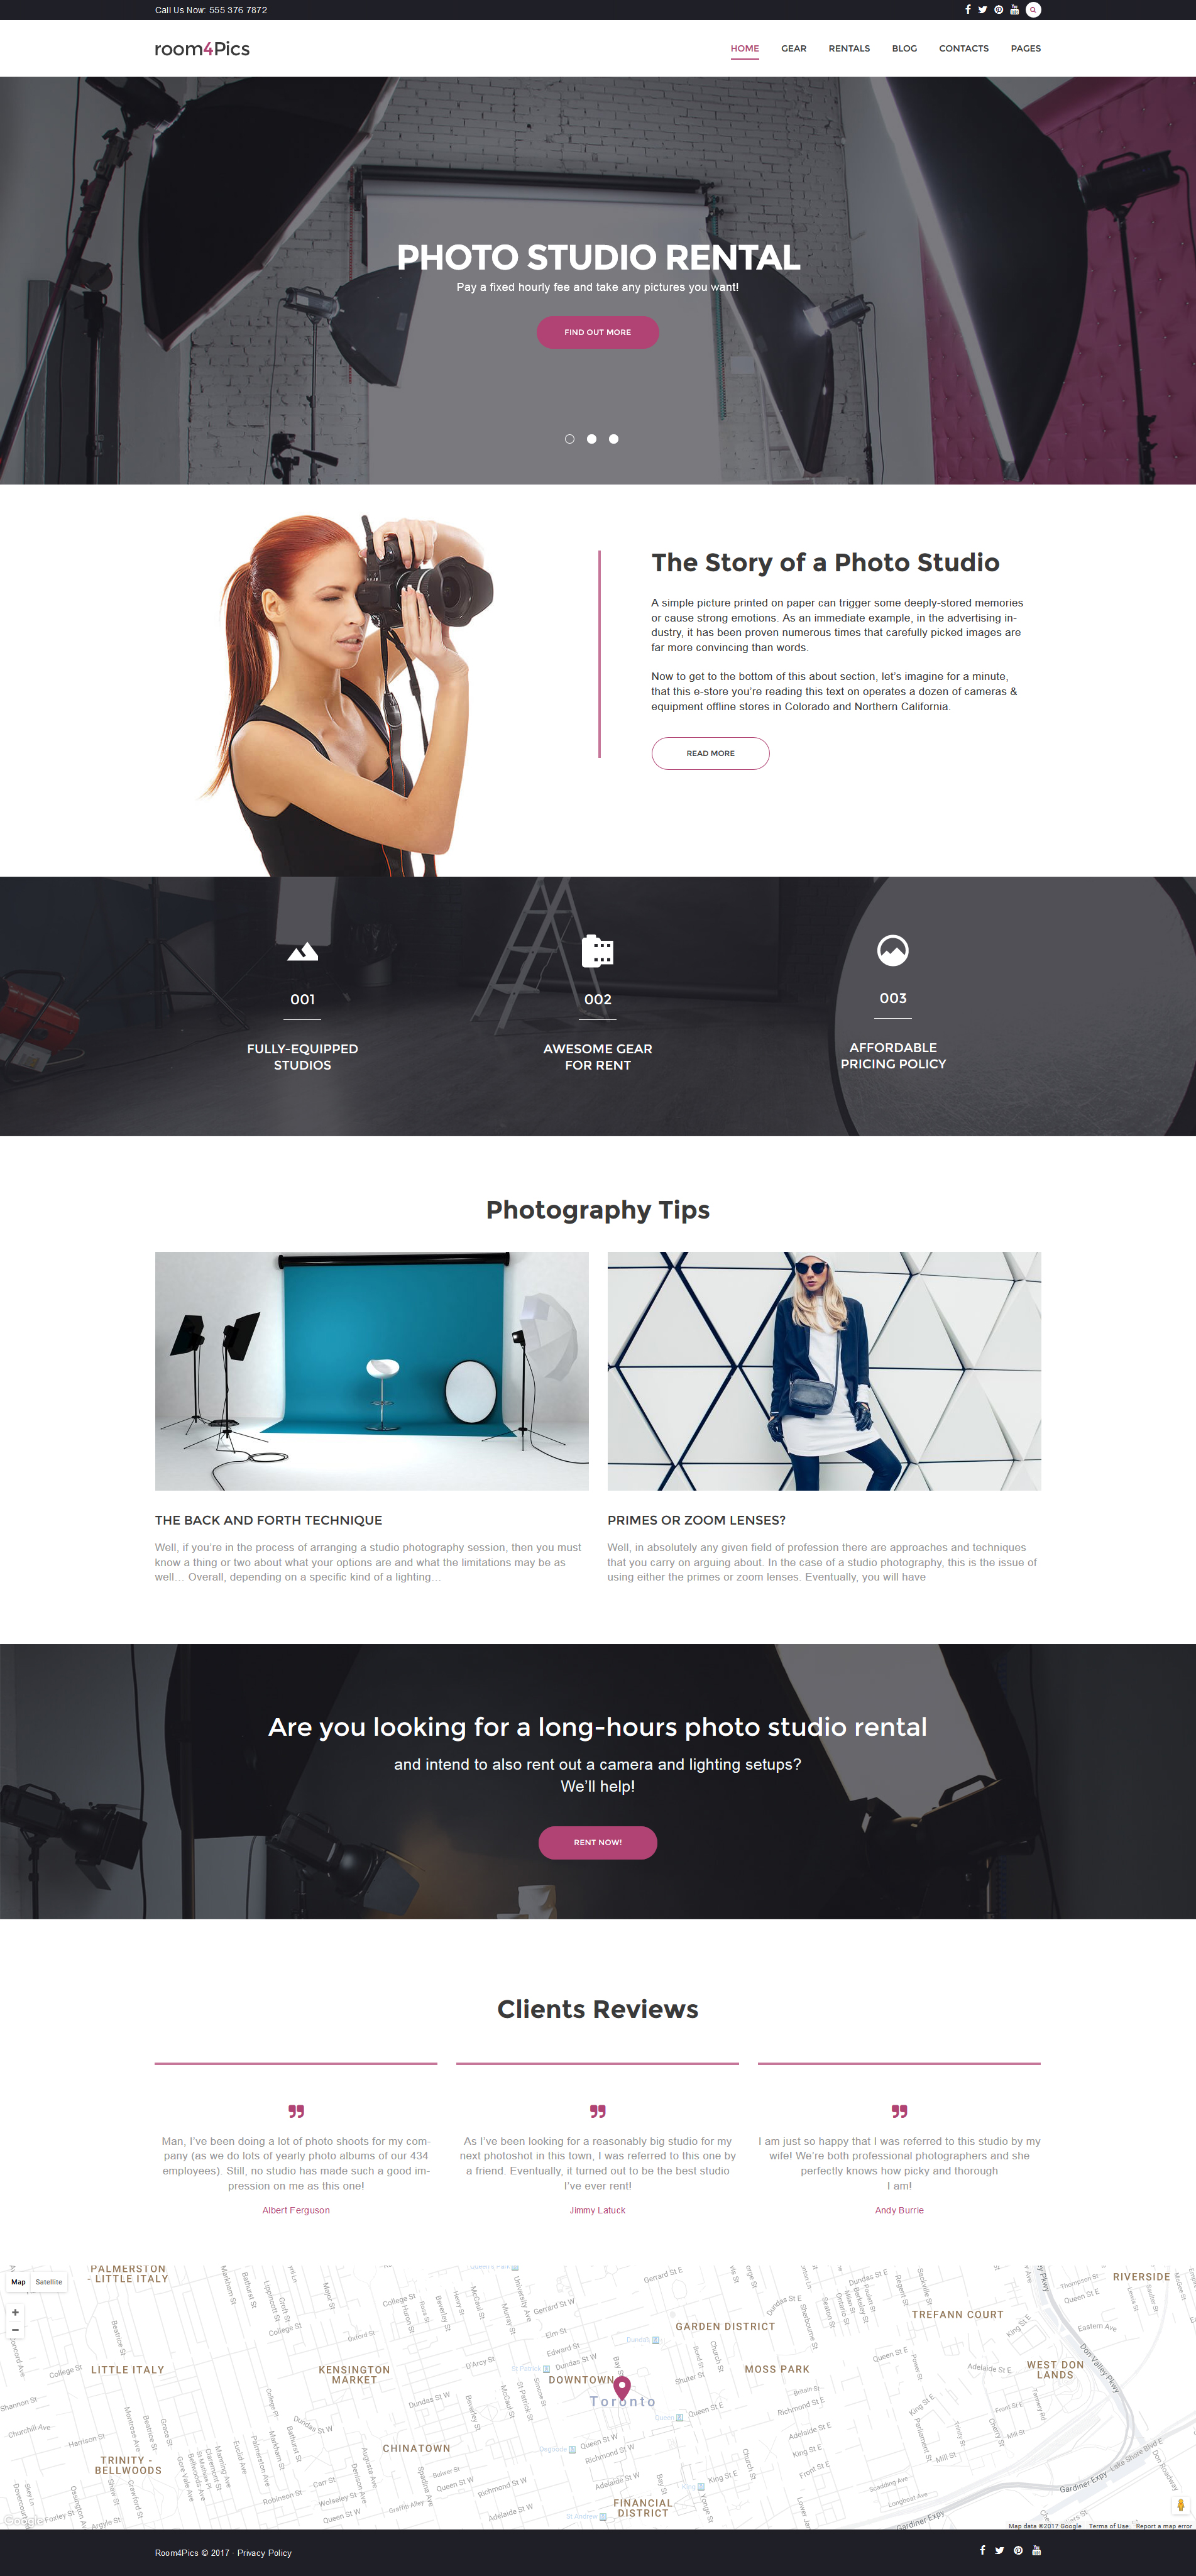 Room4Pics - Photo Studio Rental WordPress Theme